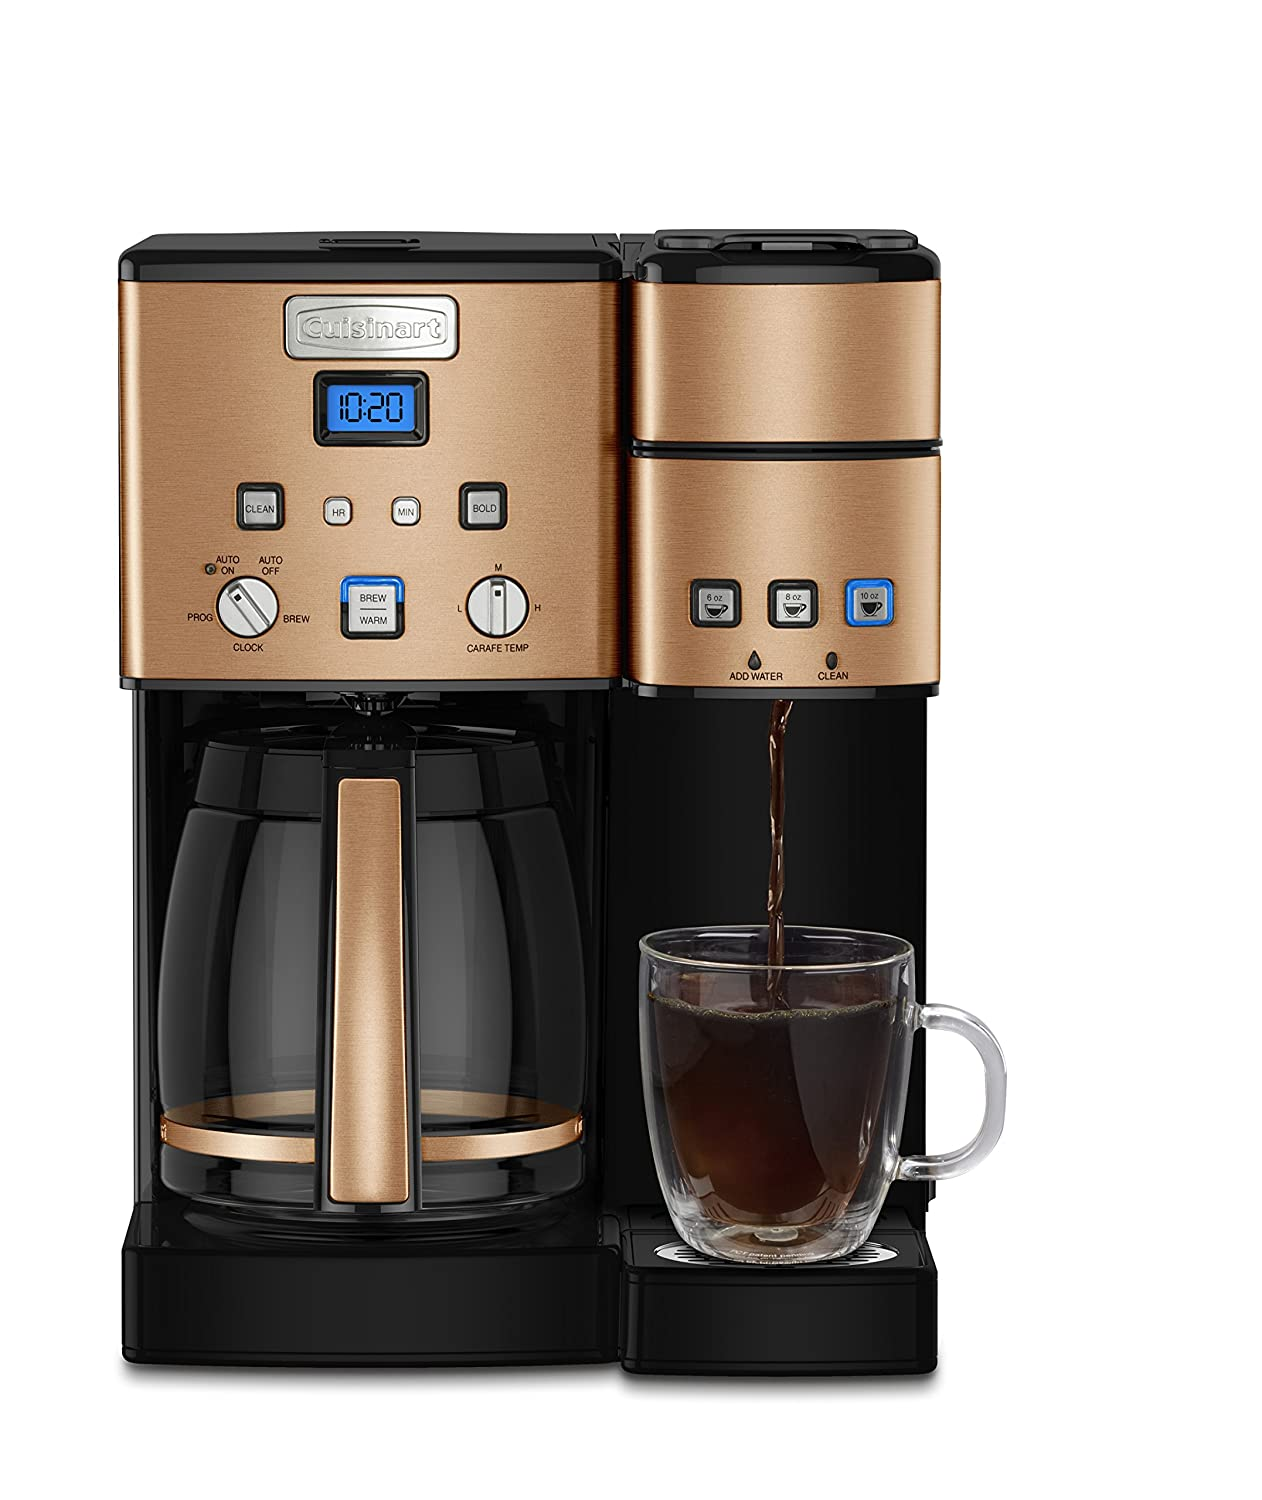 Cuisinart SS-15CP 12 Cup Coffee Maker And Single-Serve Brewer Copper